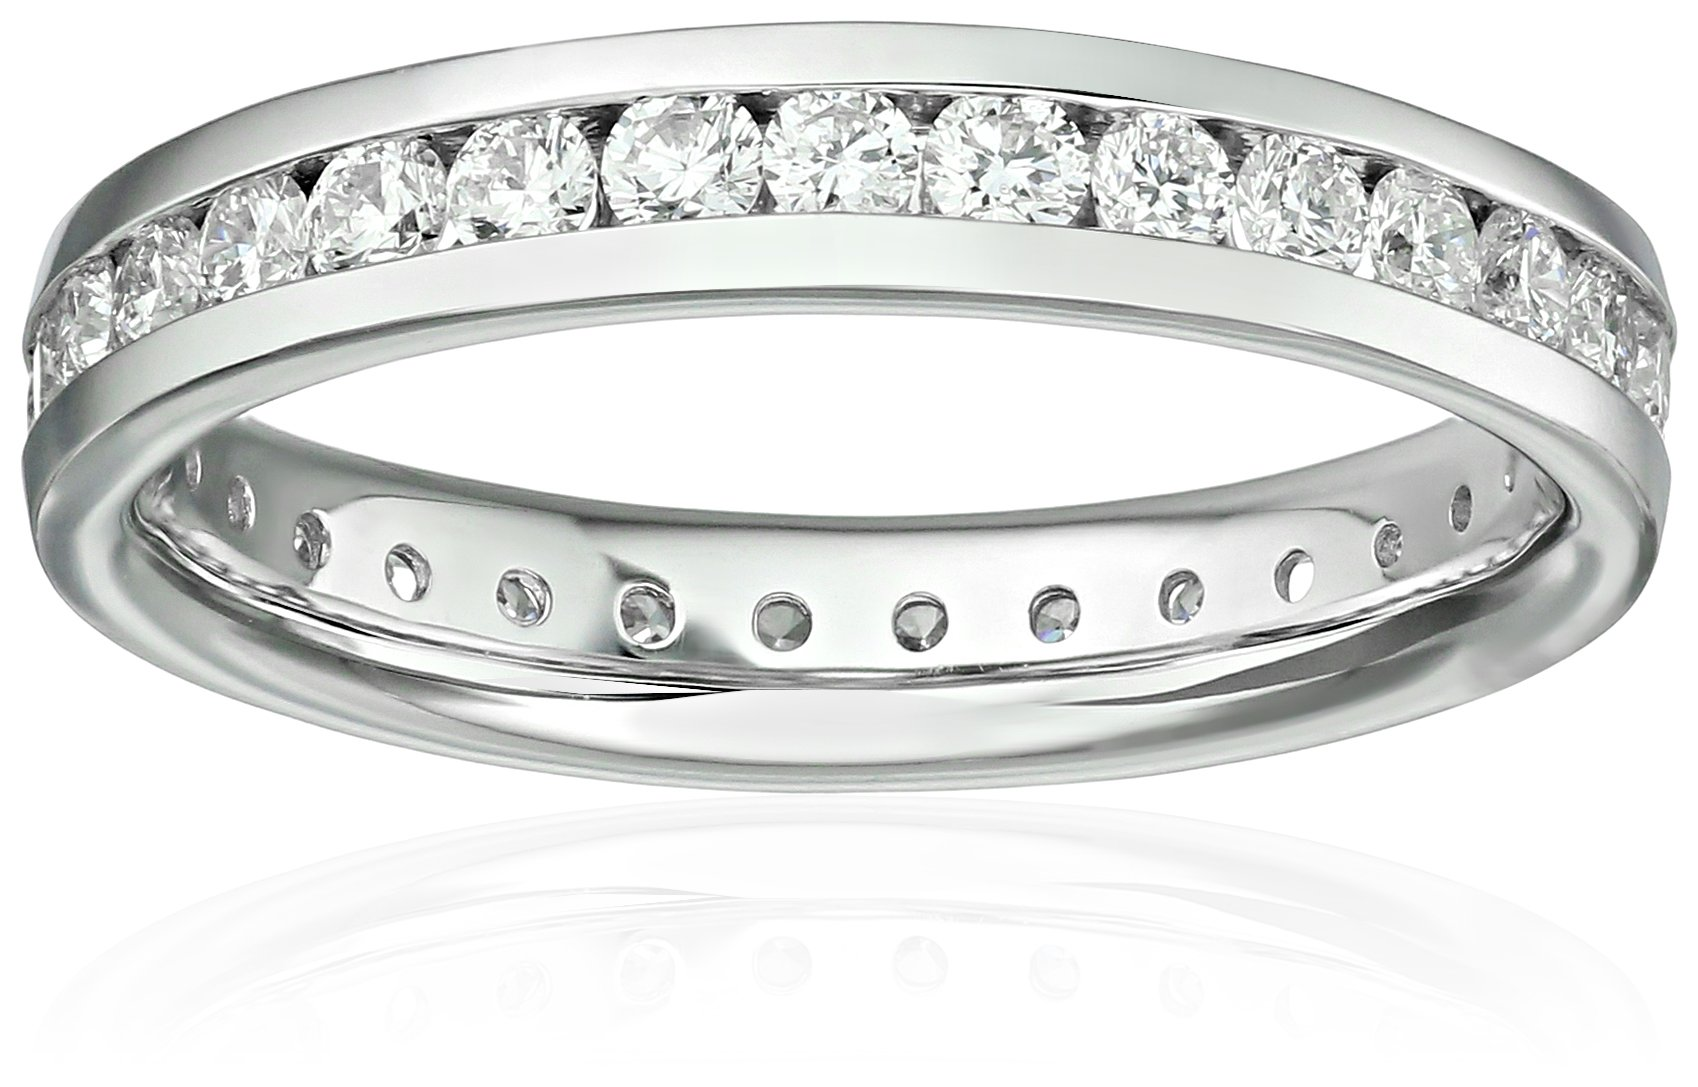 14k White Gold Diamond Channel Eternity Ring (1cttw, H-I Color, I1-I2 Clarity), Size 7